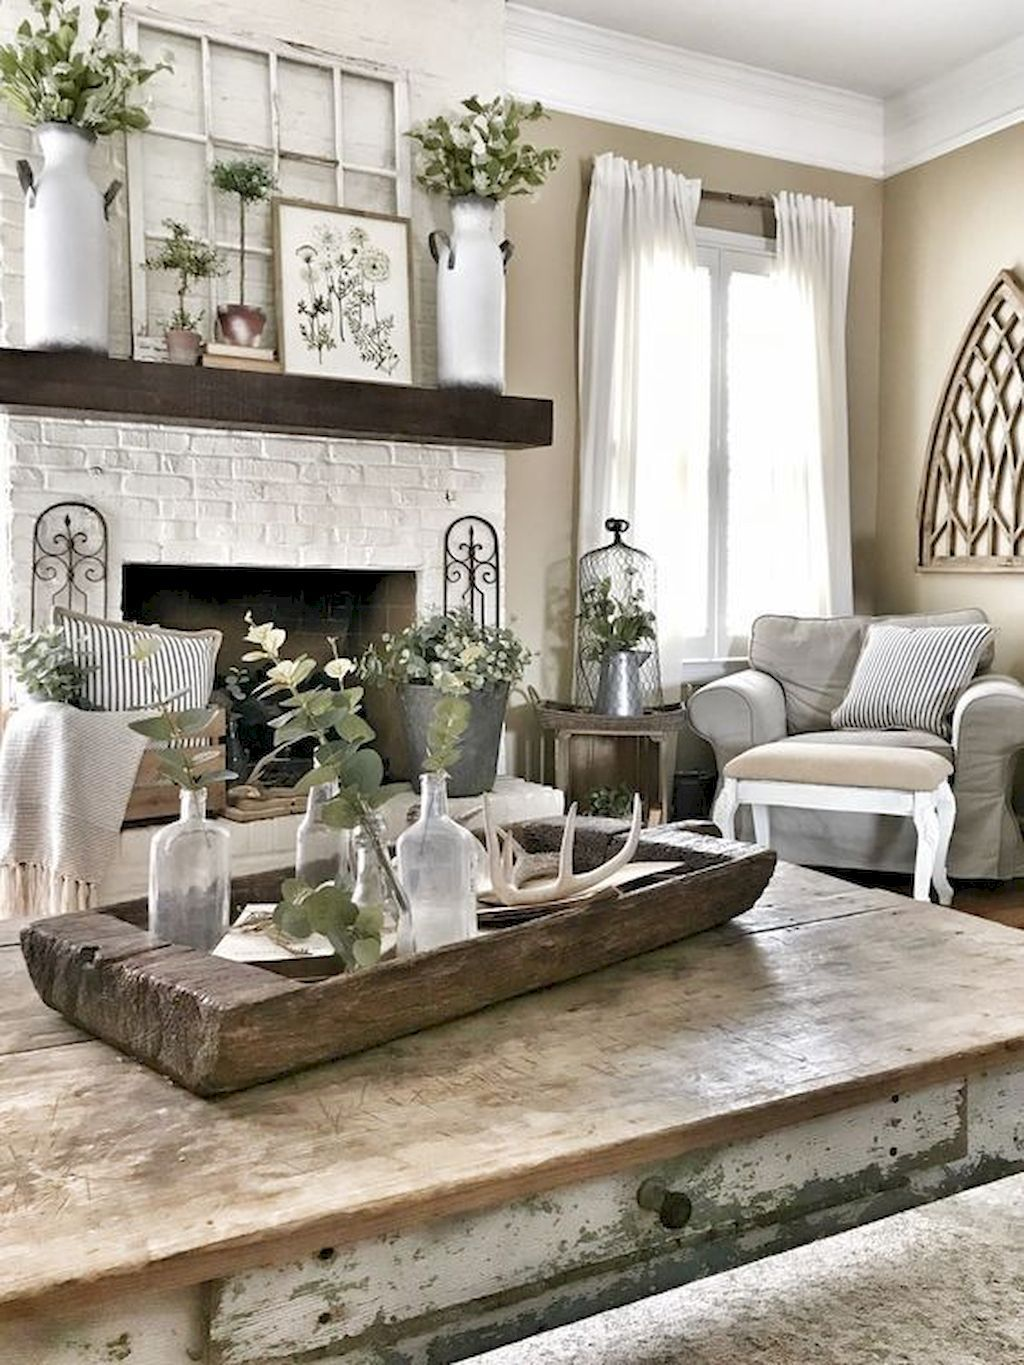 64 Cozy Farmhouse Living Room Decor Ideas images